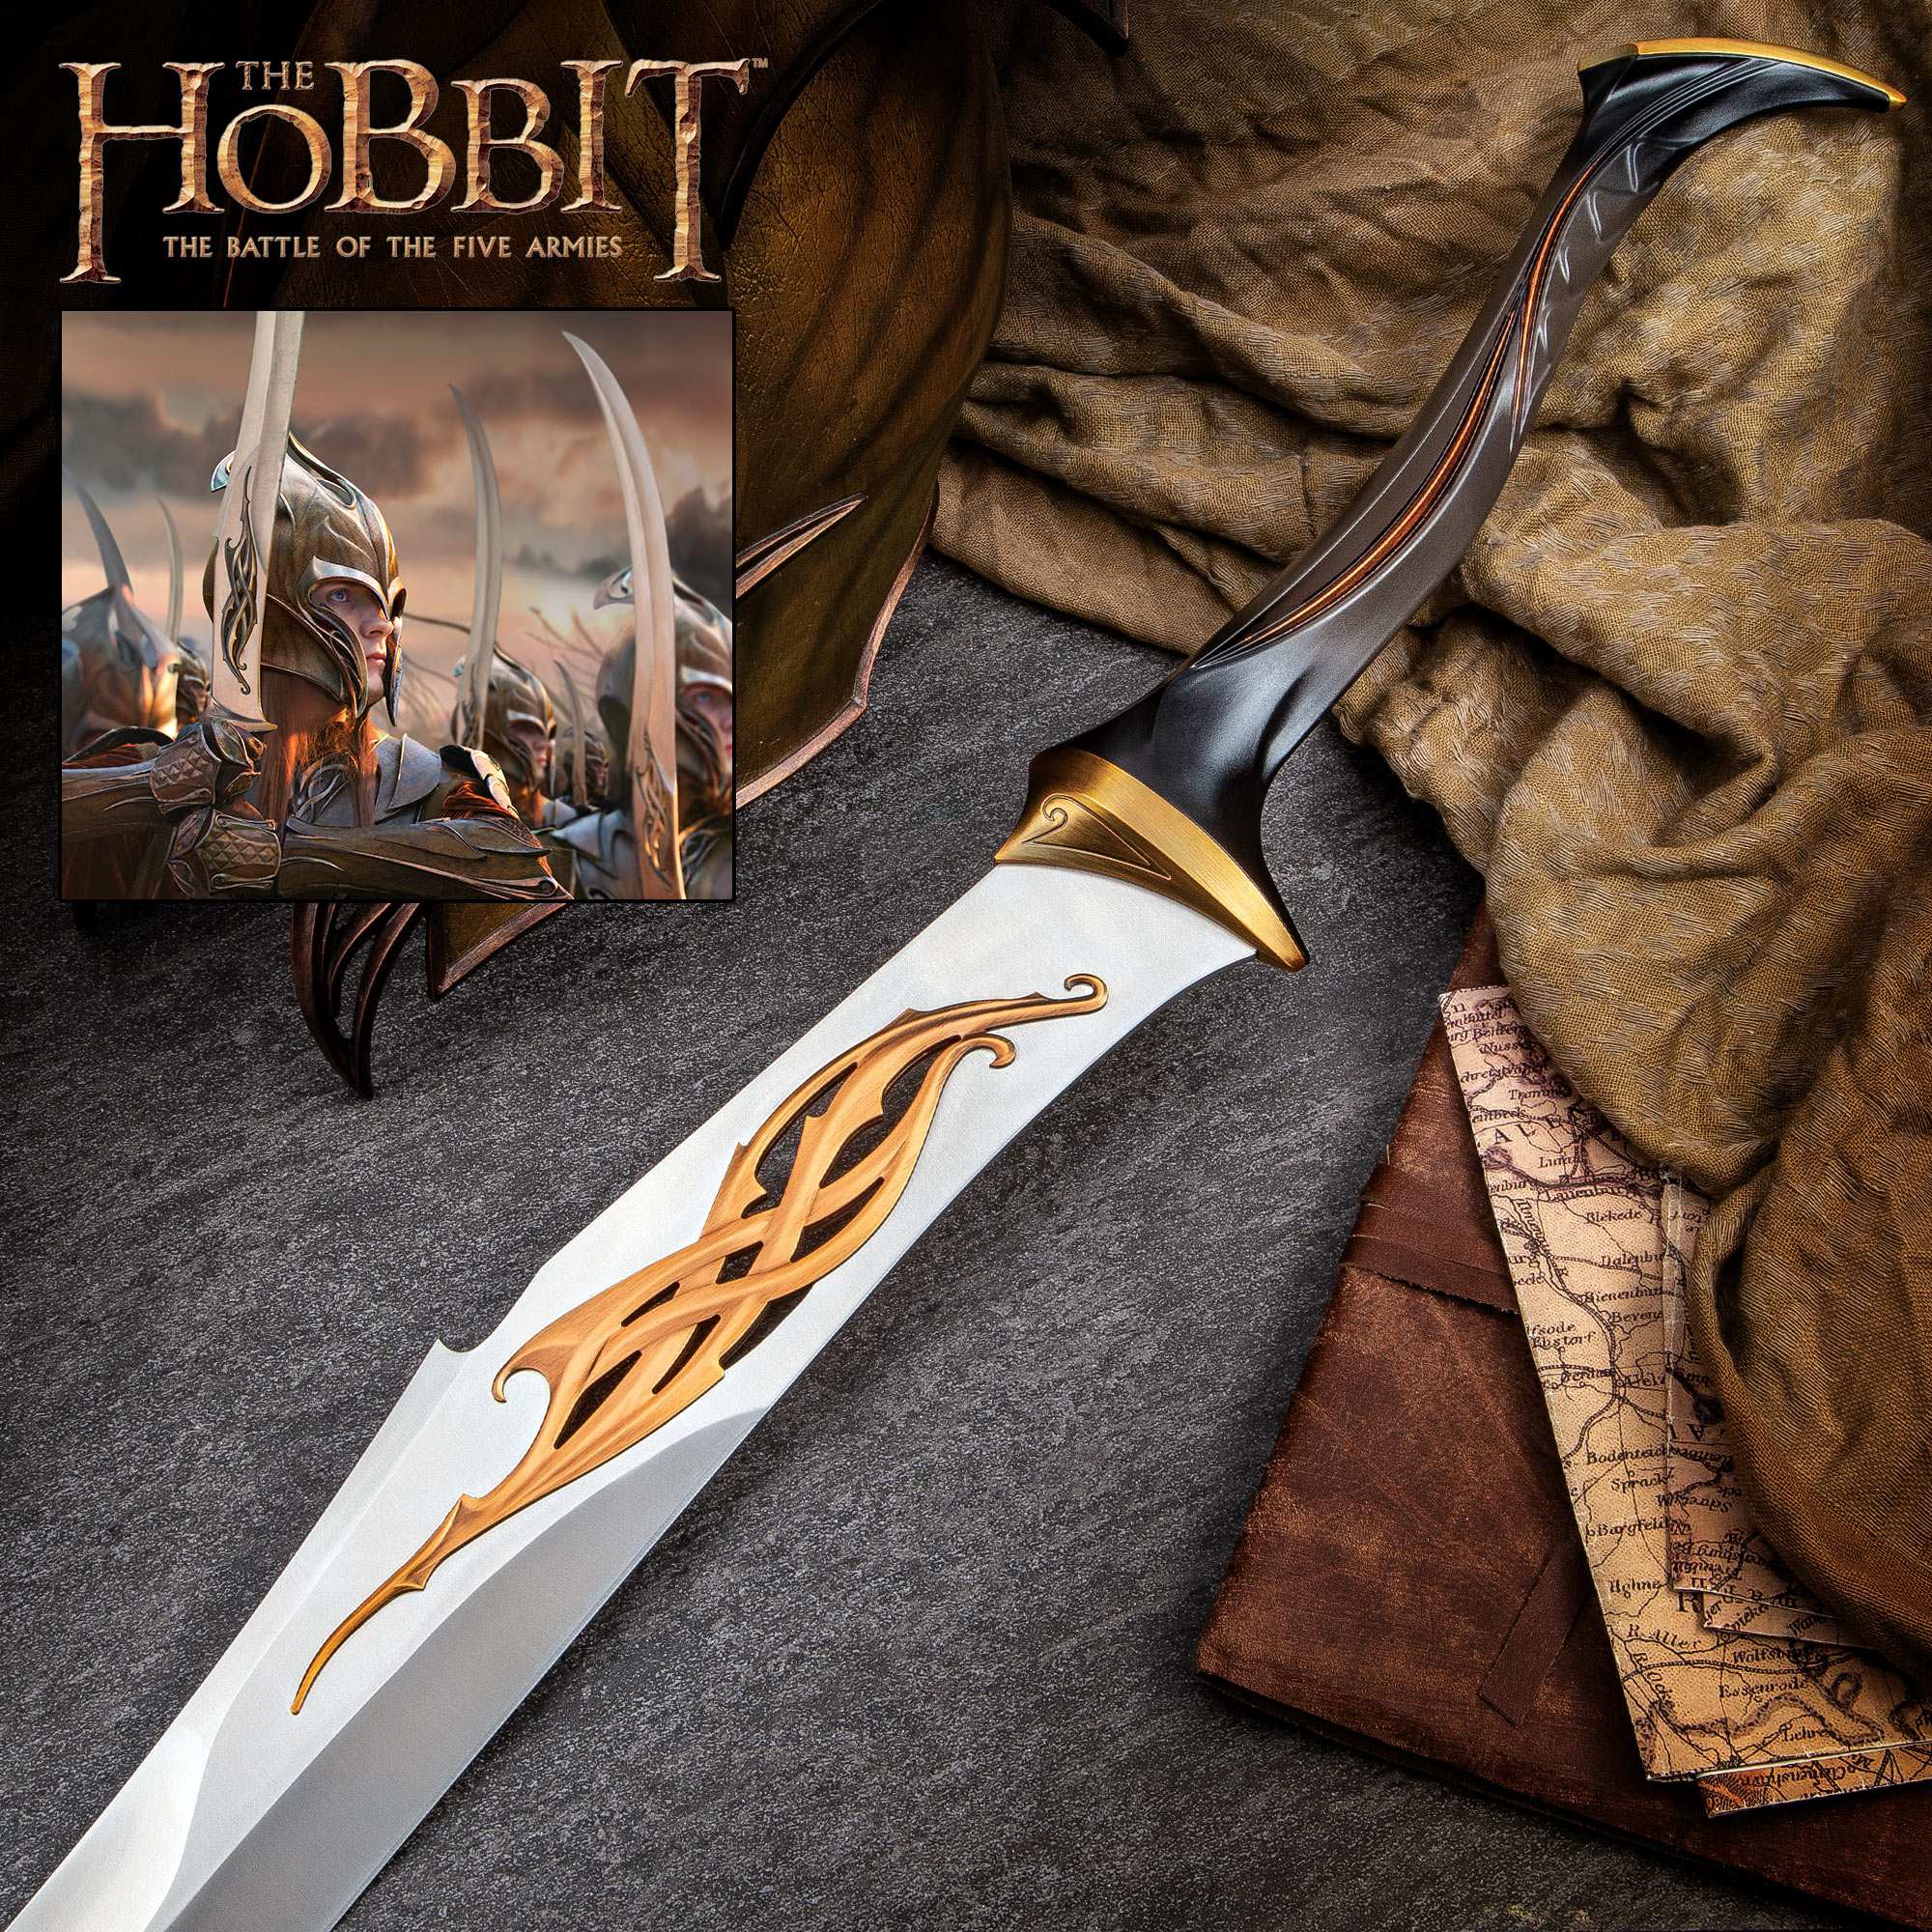 The Hobbit Mirkwood Infantry Sword Budk Com Knives